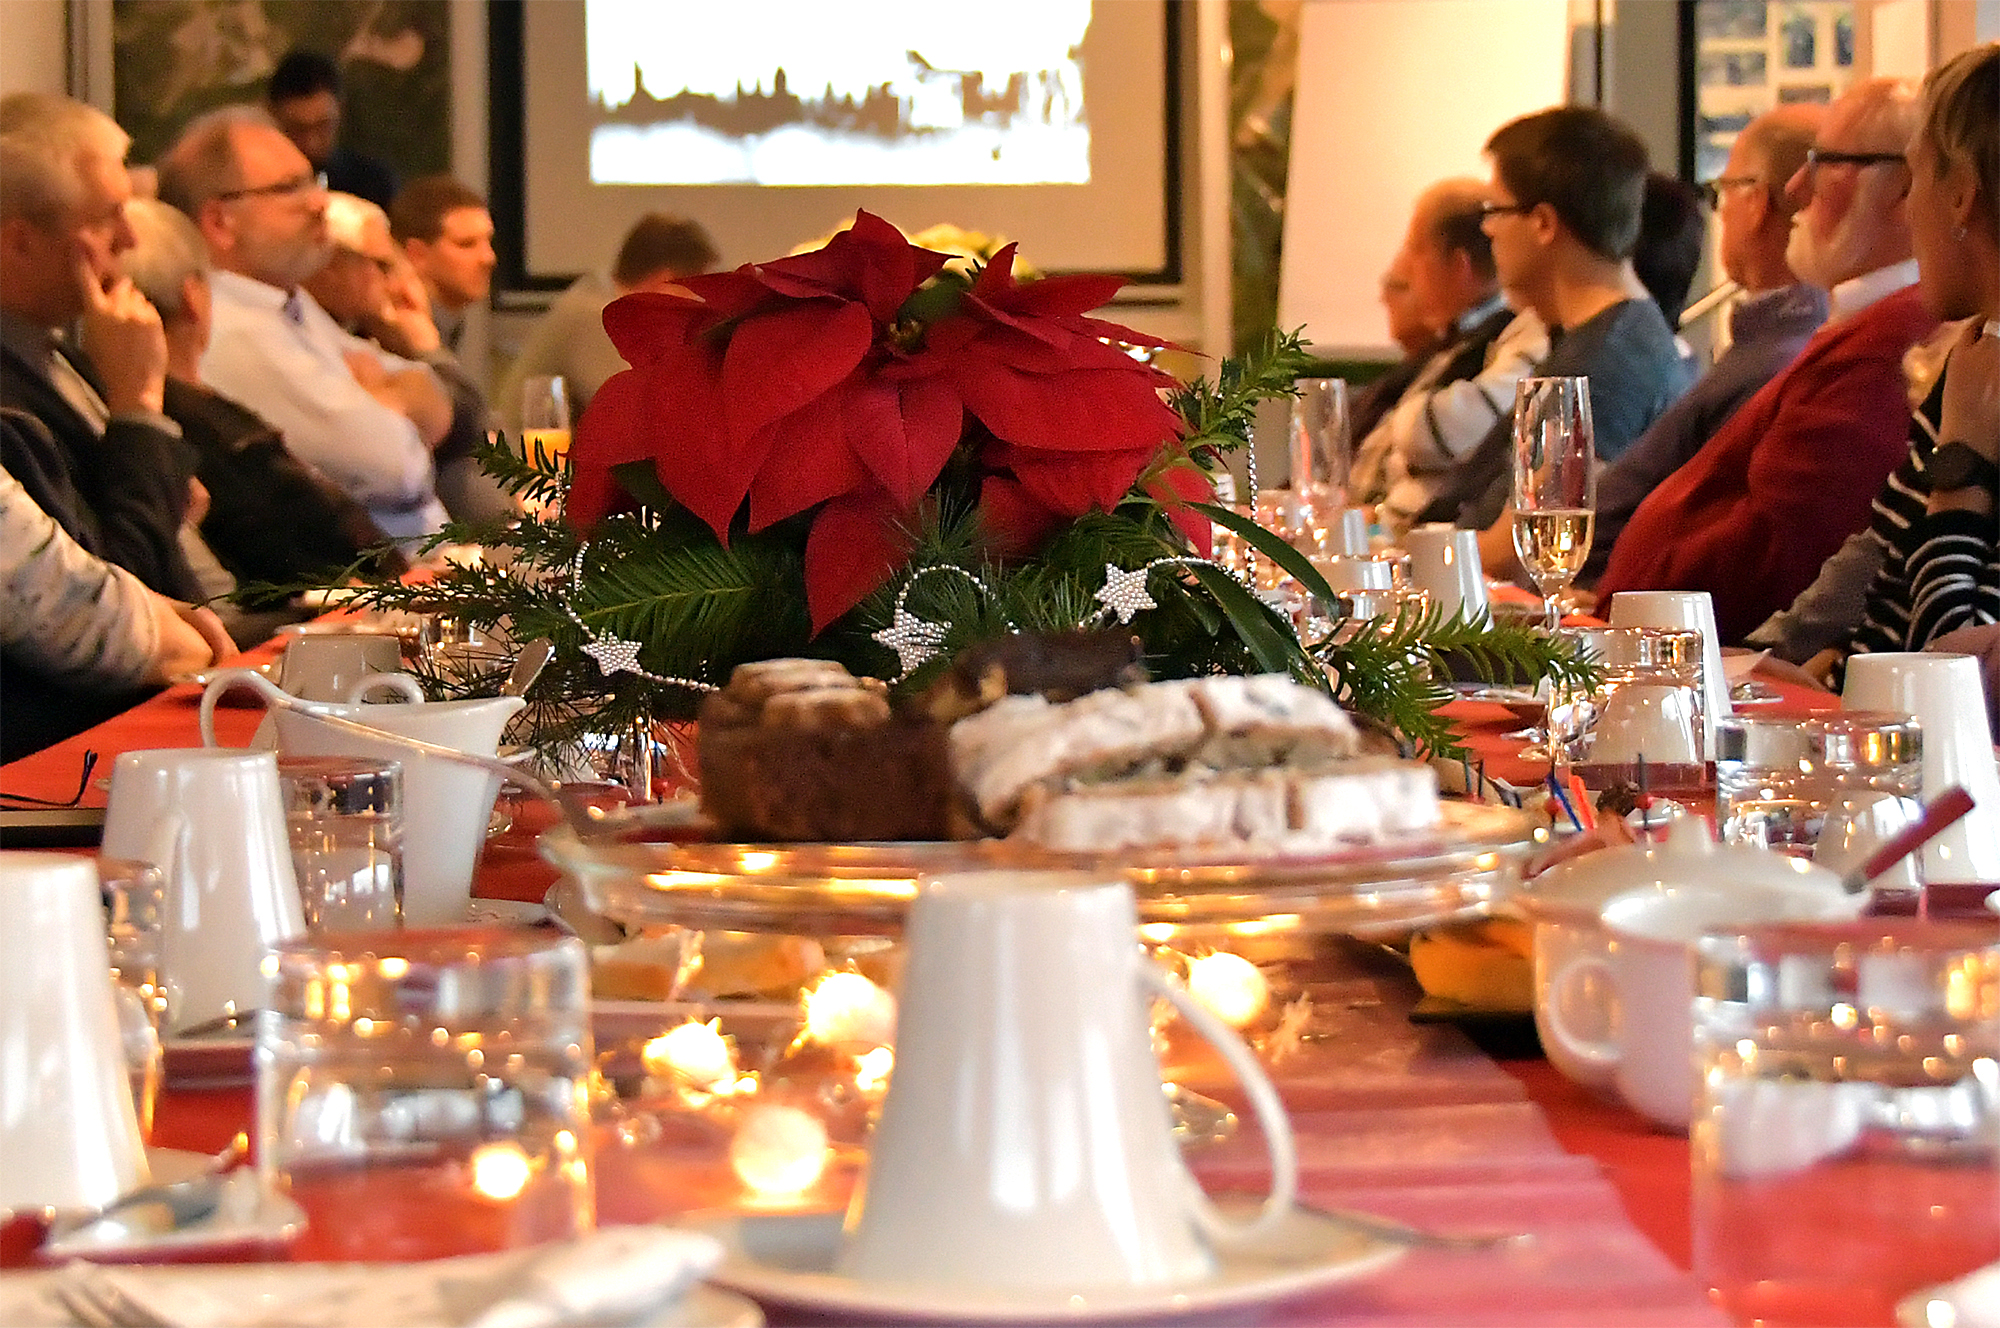 RÖHRIGgranit invites to coffee and pastries in Advent